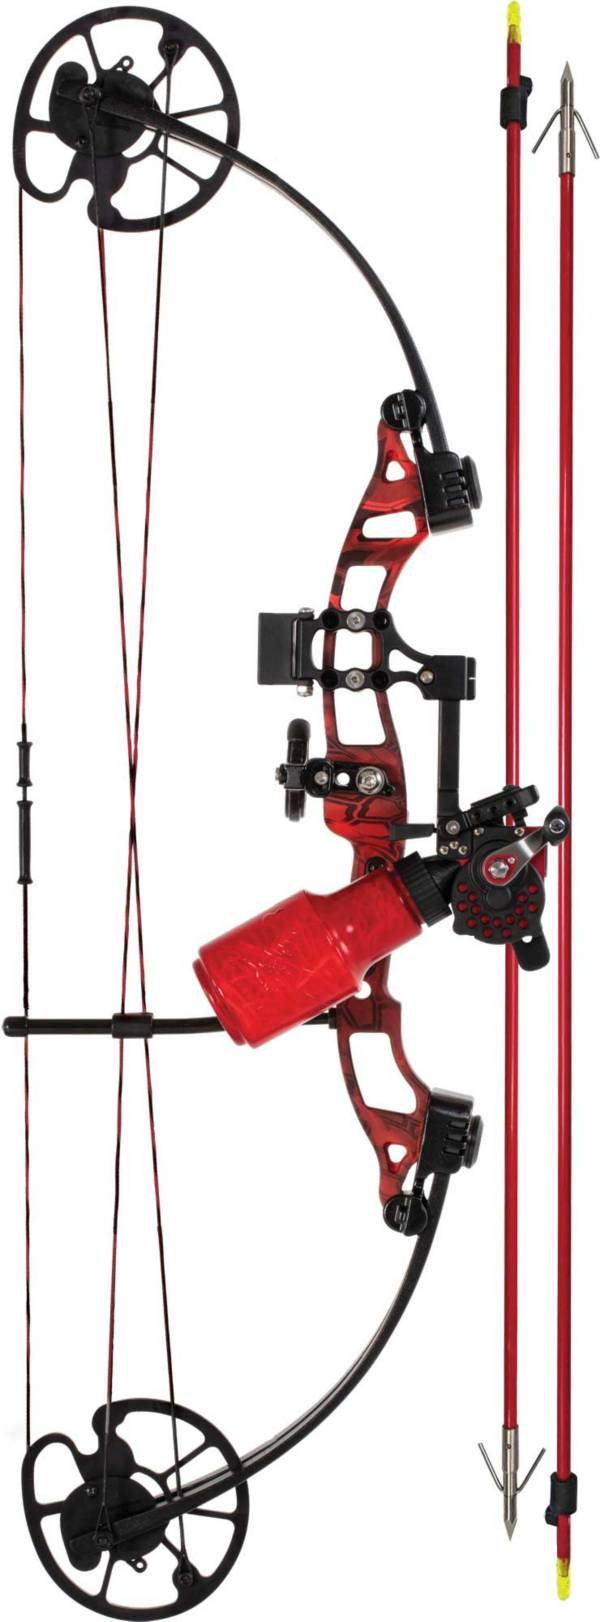 Cajun Sucker Punch Bowfishing Bow Package product image